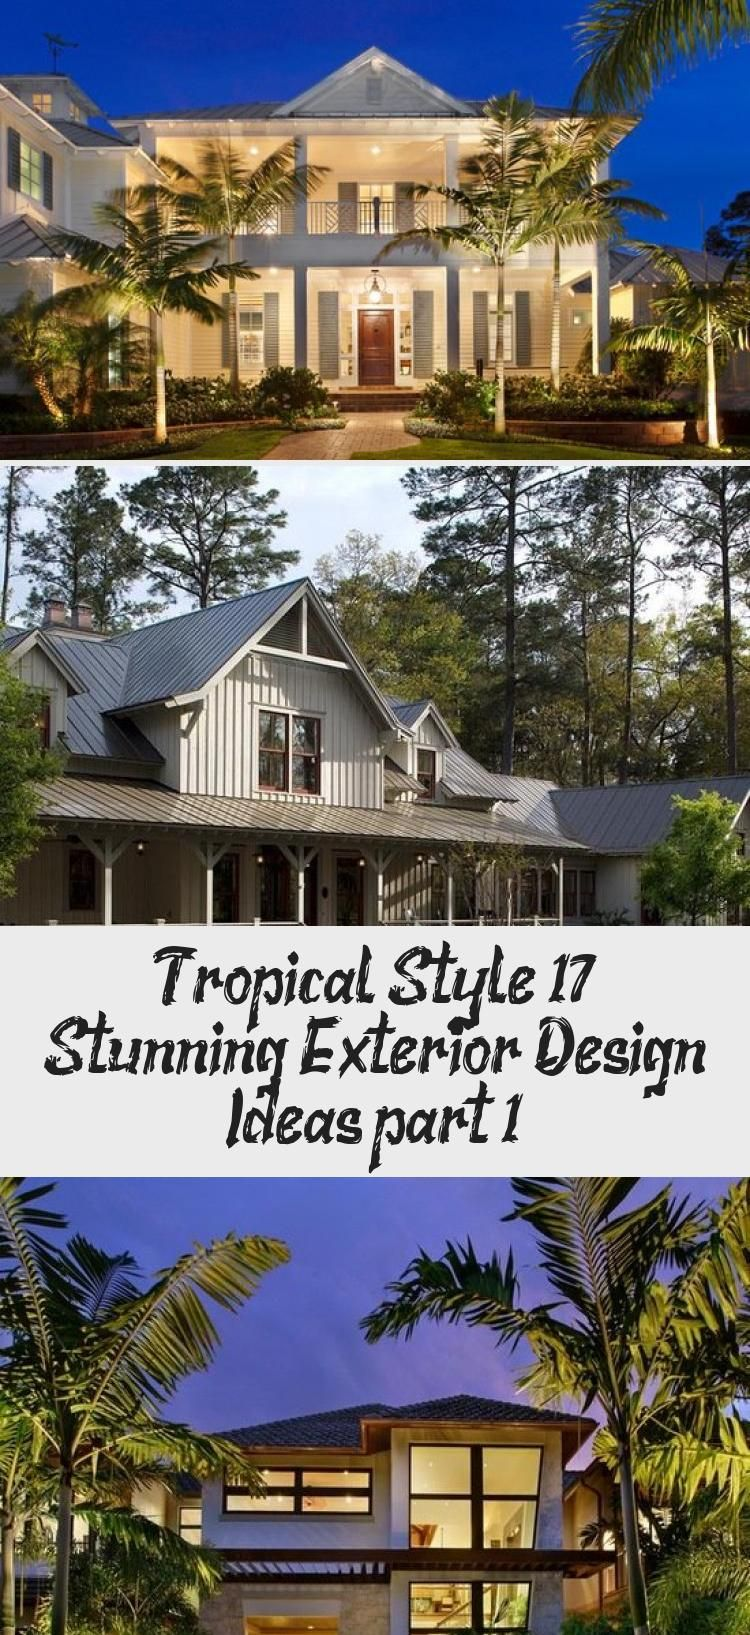 Tropical Style 17 Stunning Exterior Design Ideas Part 1 Elsie S Blog In 2020 Exterior Design Tropical Style Exterior